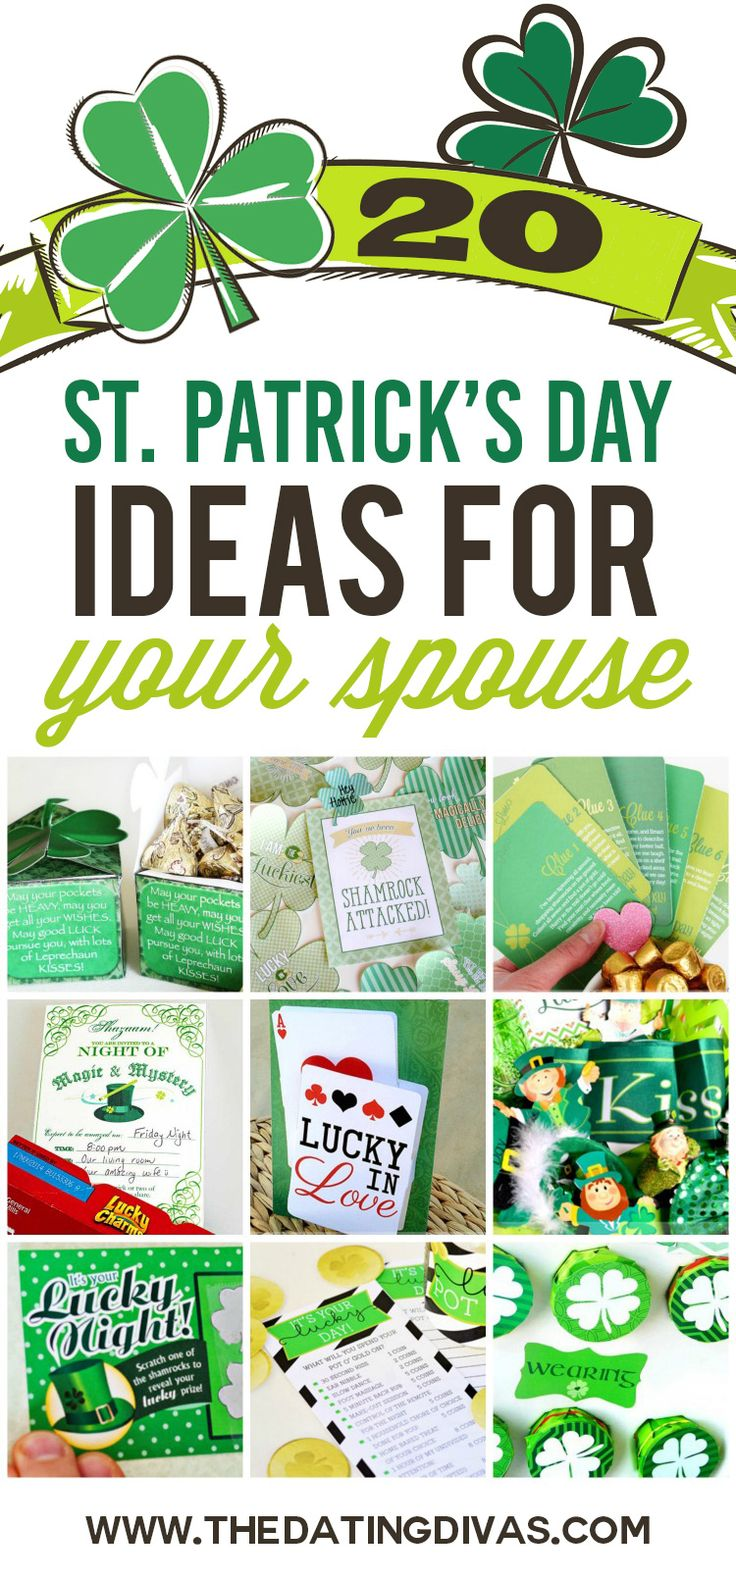 Make this St. Patrick's Day the best one yet!